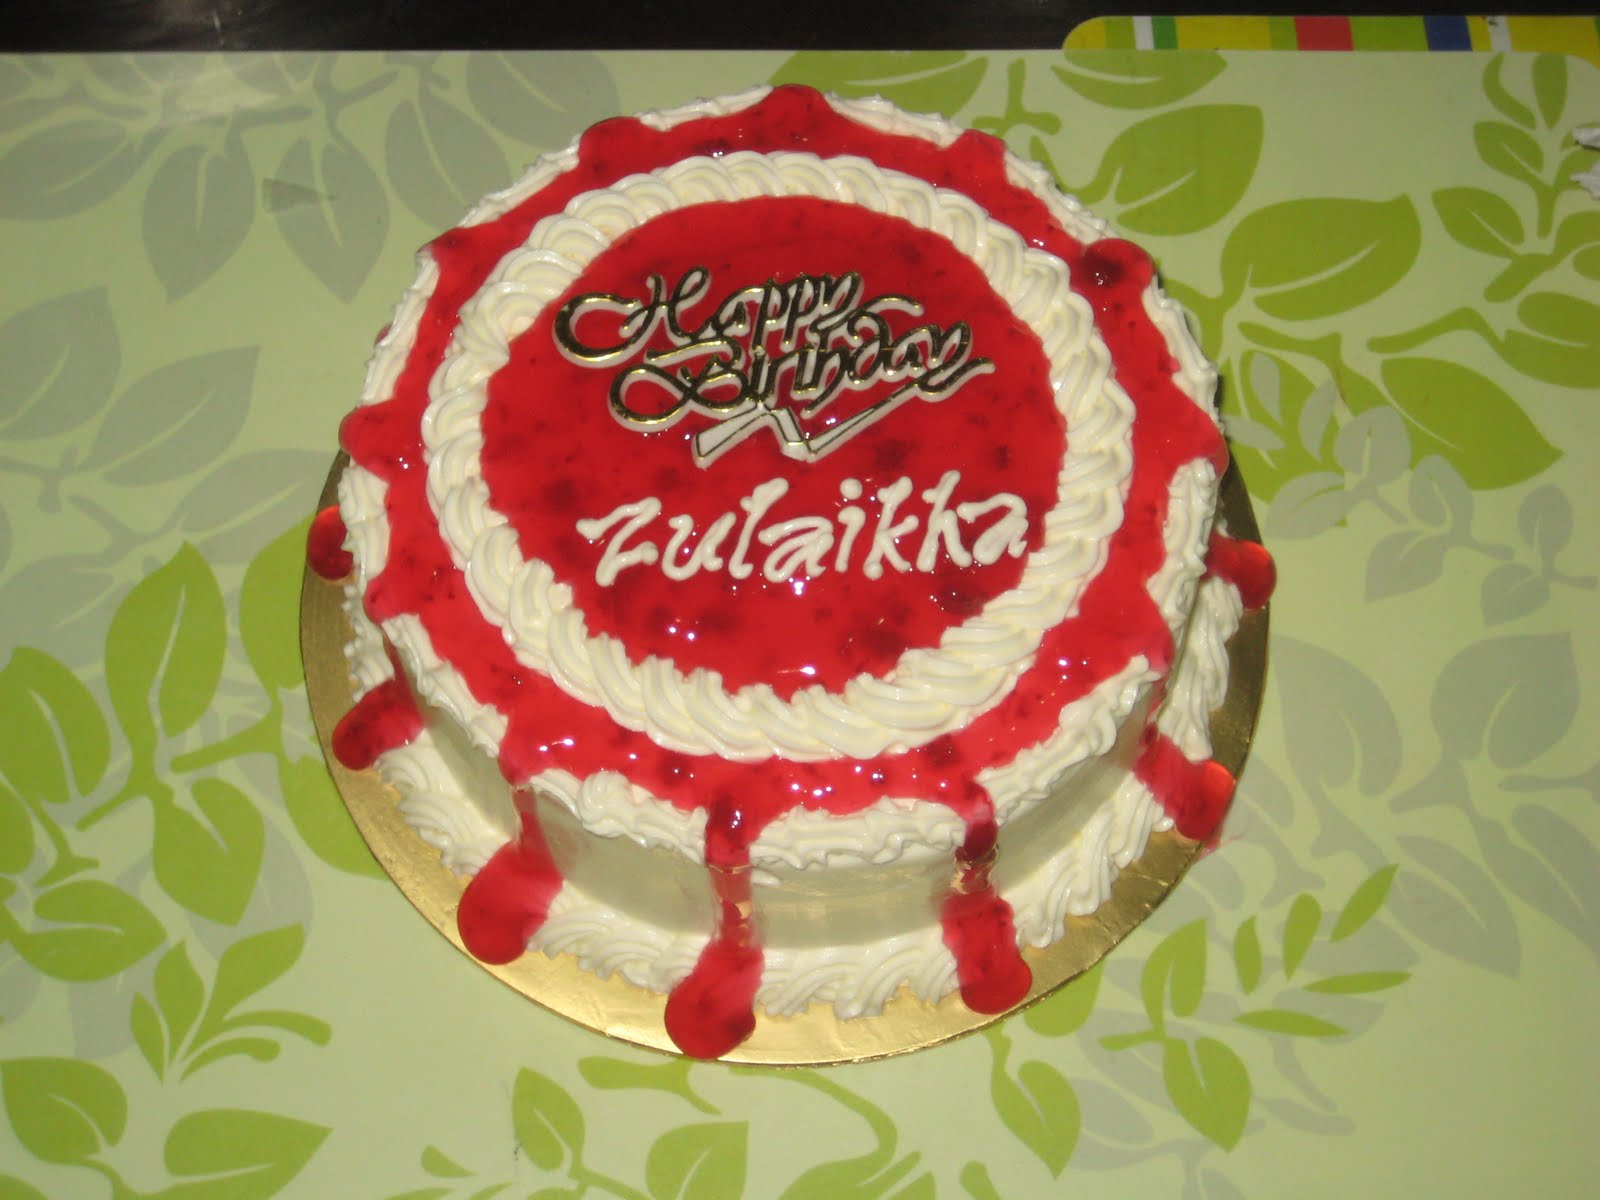 Is Eating Birthday Cake Halal Image Inspiration of Cake and